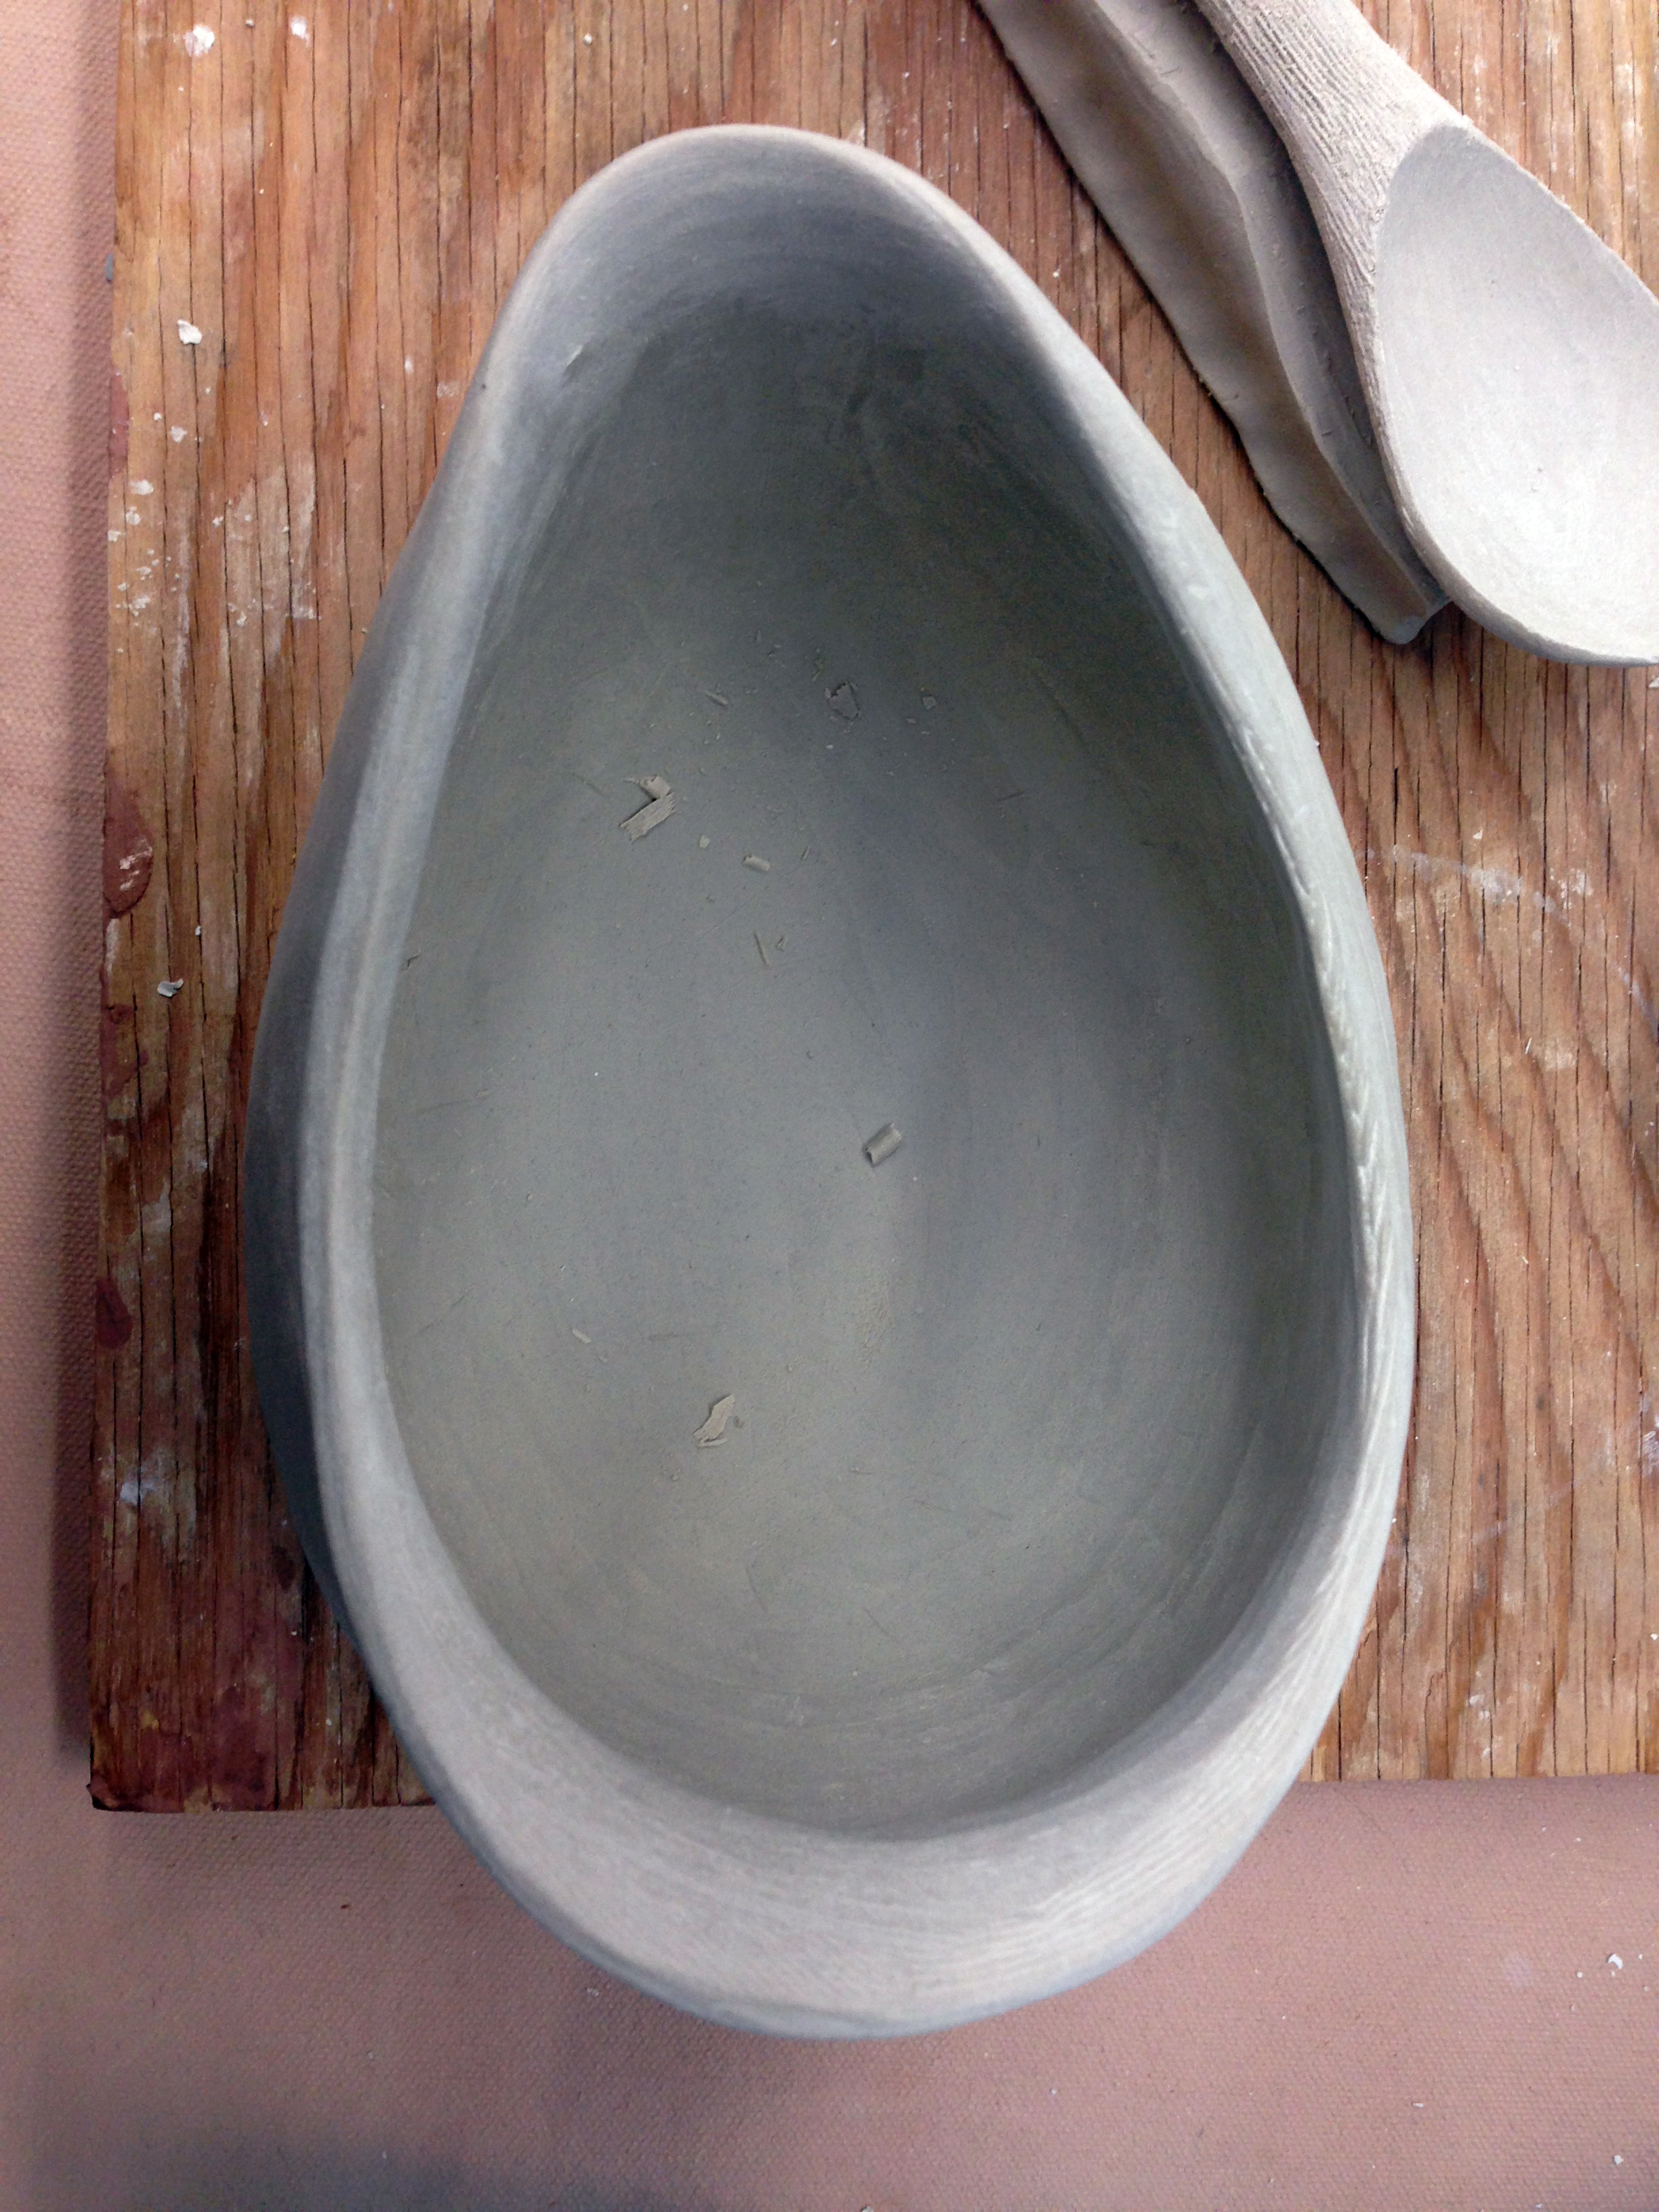 Considering a curved spout design for a feeding vessel, so that someone can offer liquid to another who is sitting to her left.